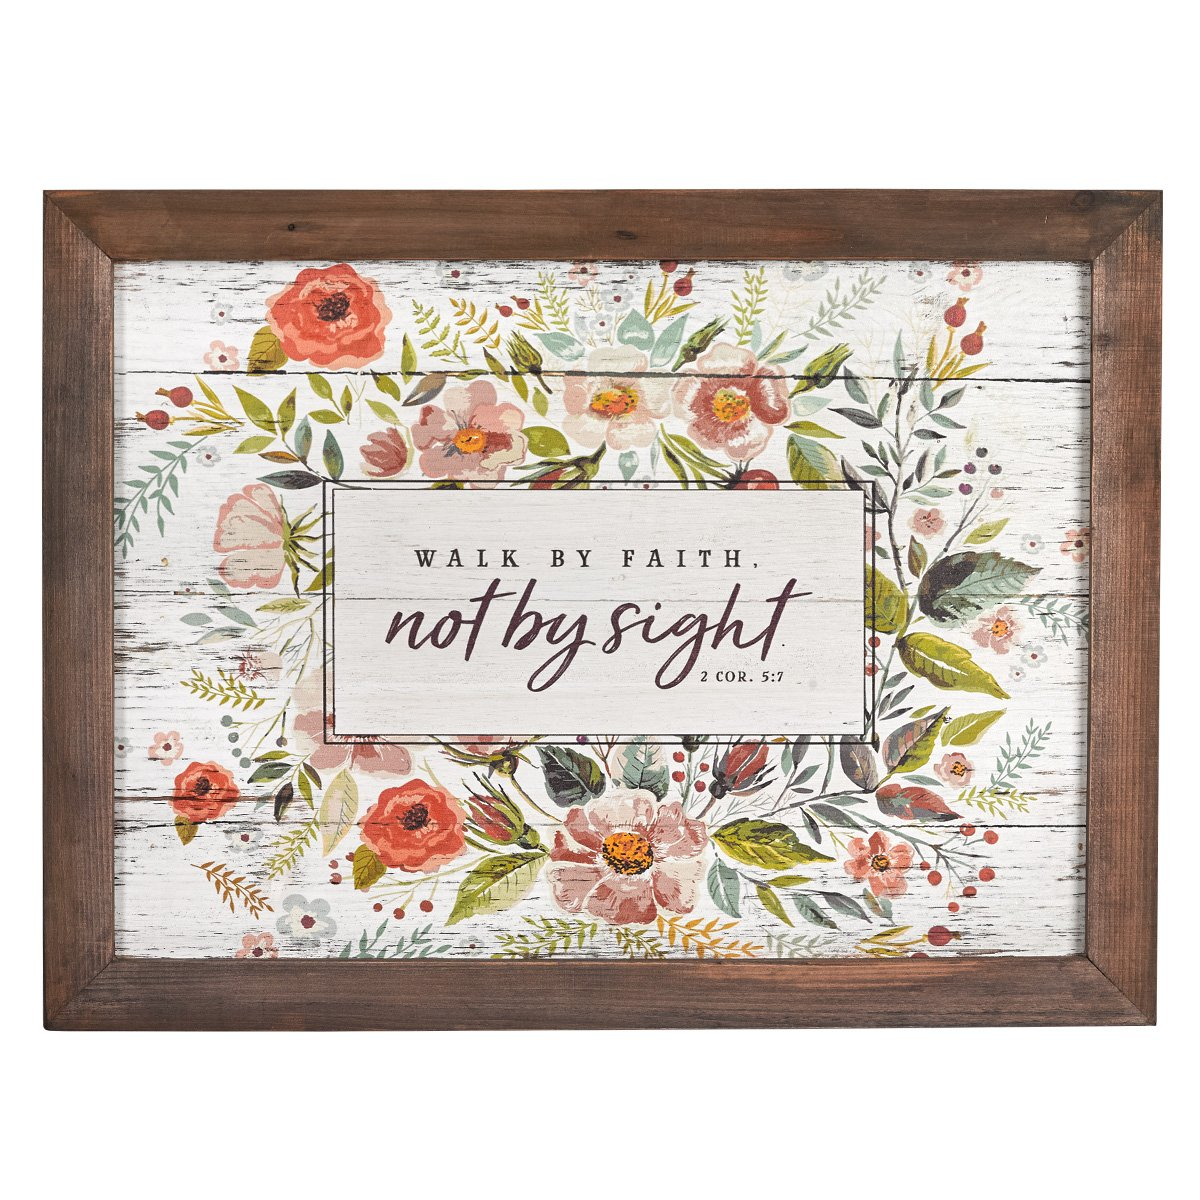 Christian at Gifts Wall Art Home Décor | Walk by Faith – 2 Corinthians 5:7 Bible Verse Wall Plaque | Rustic Floral, 15 x 20 Inches